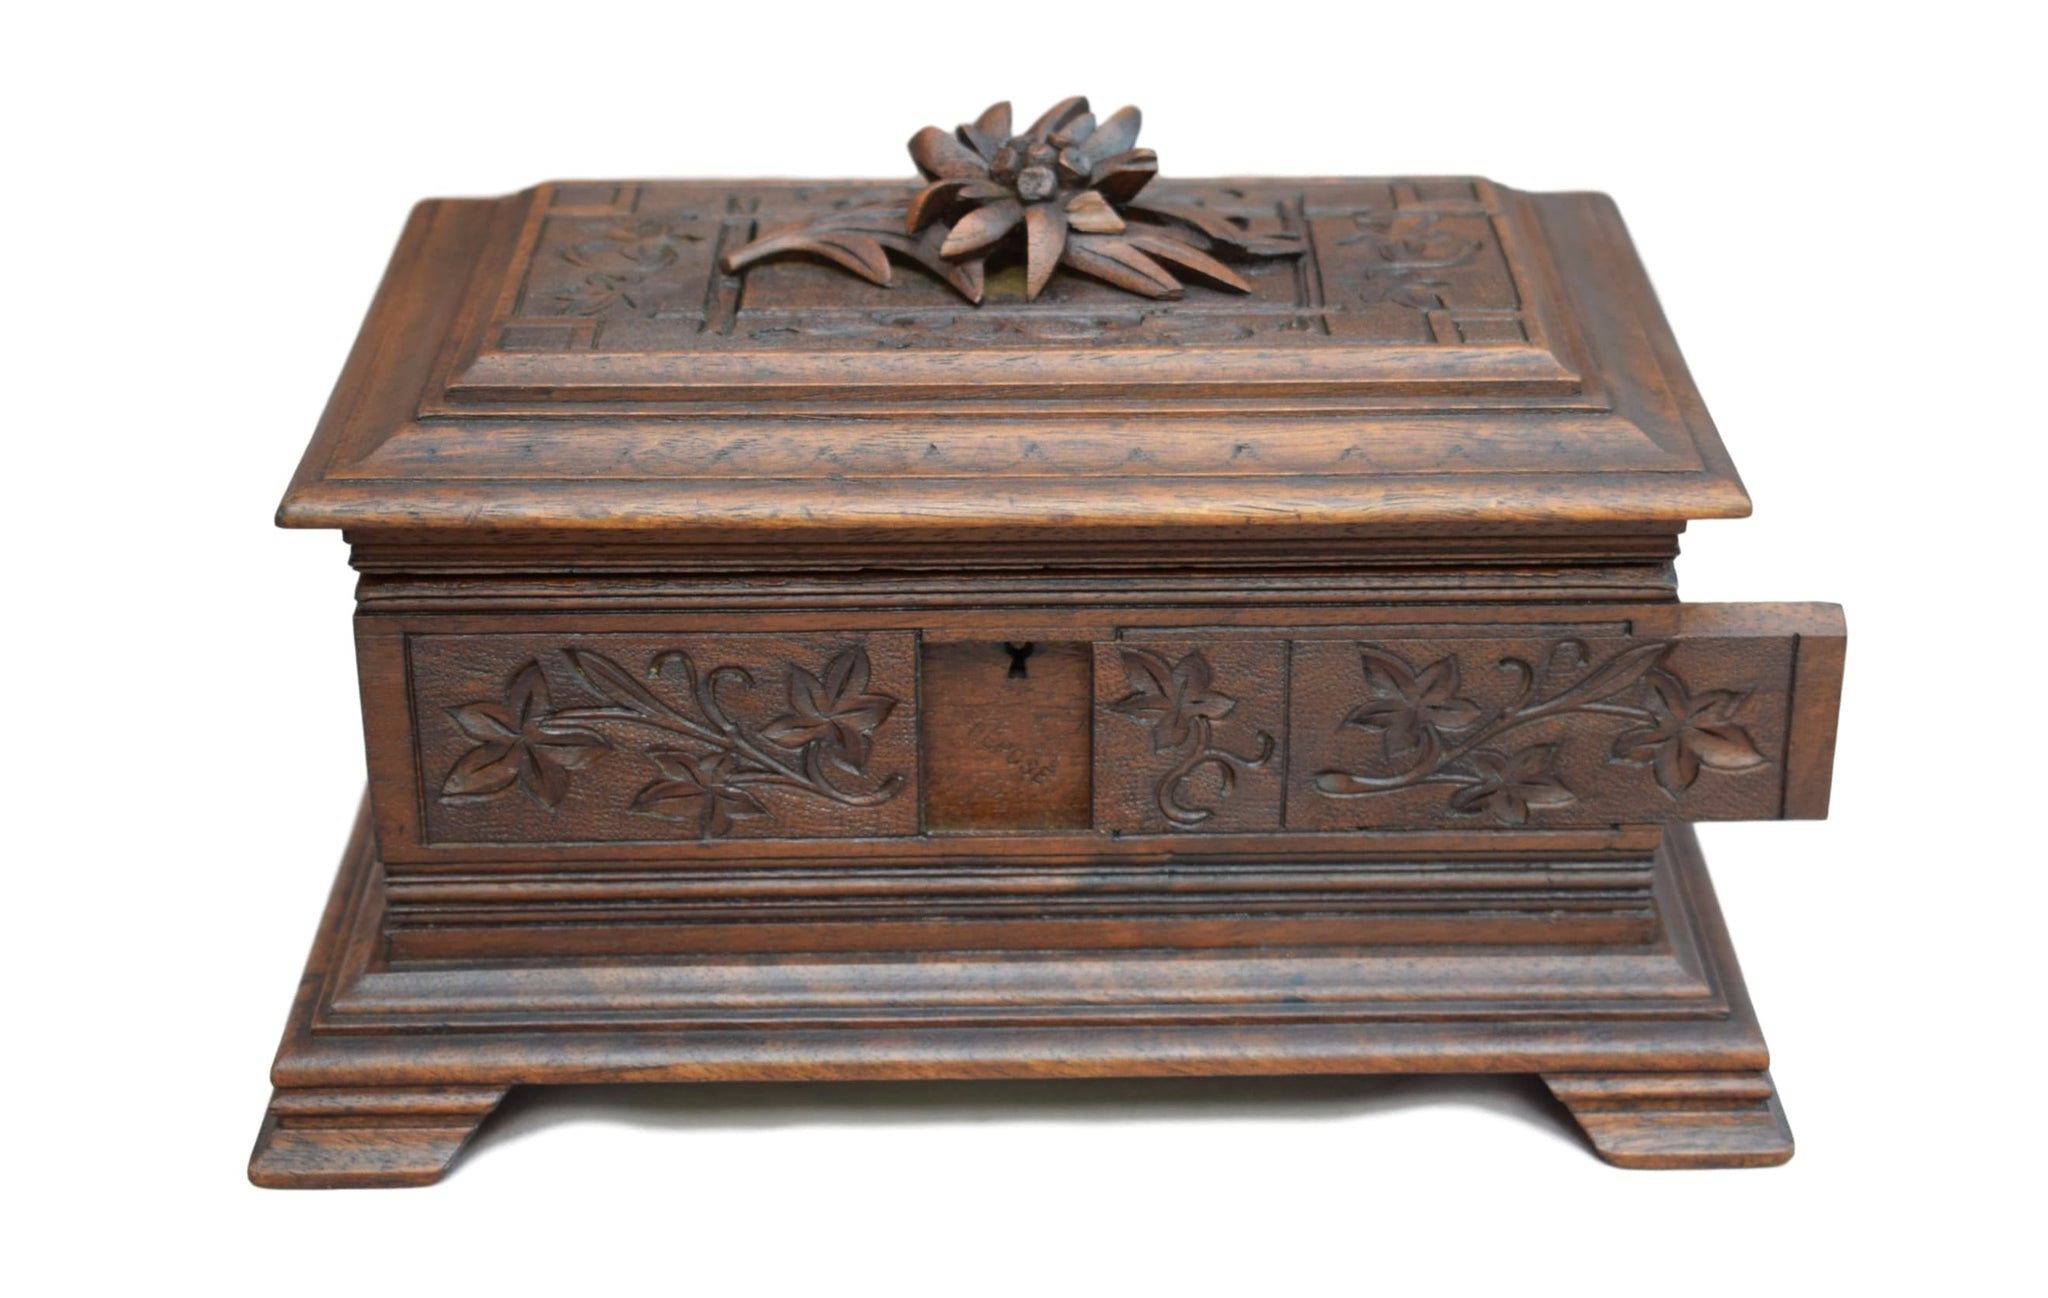 French Antique Black Forest Hand Carved Walnut Wood Jewelry Box - Charmantiques